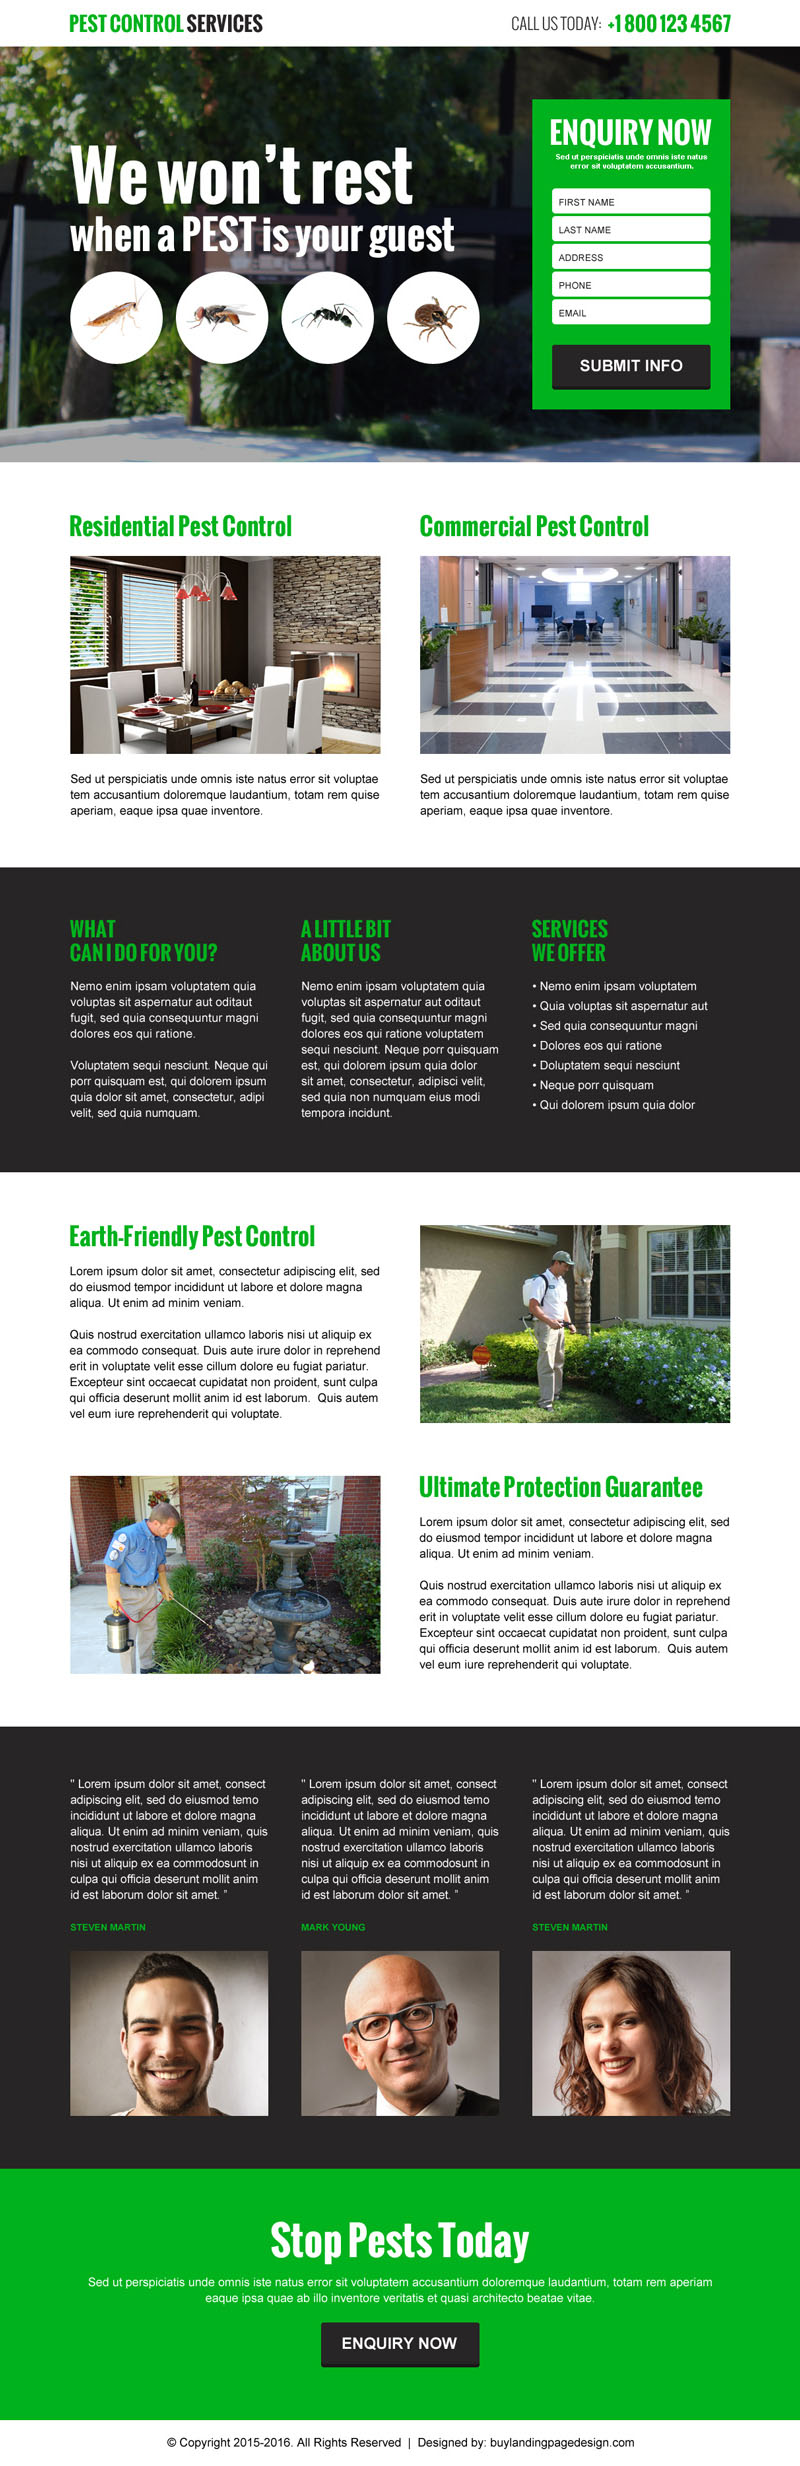 best-pest-control-services-lead-generation-converting-landing-page-design-001